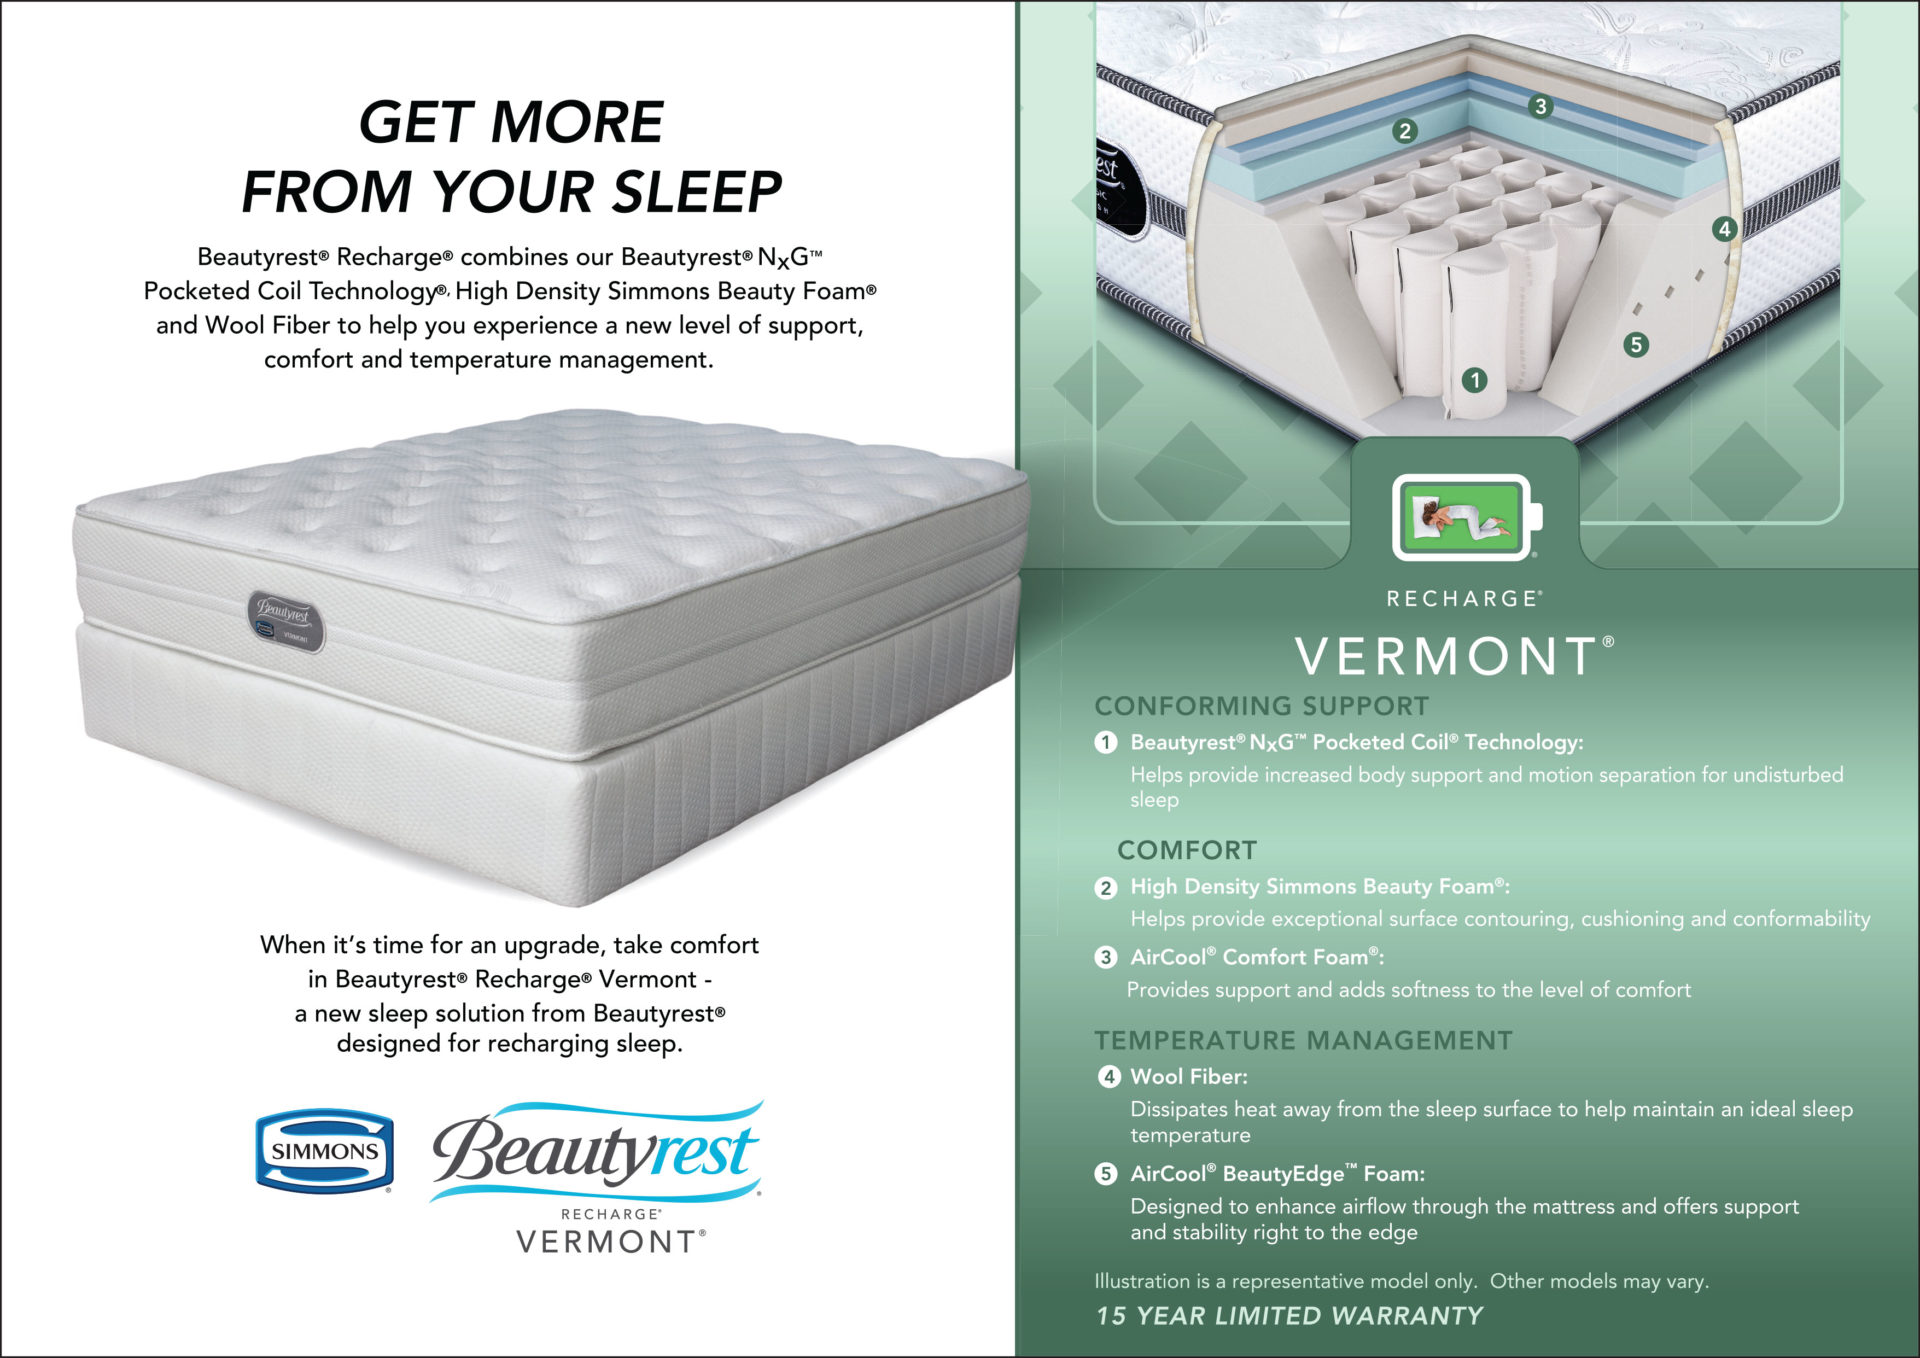 Simmons | Vermont Bed Set